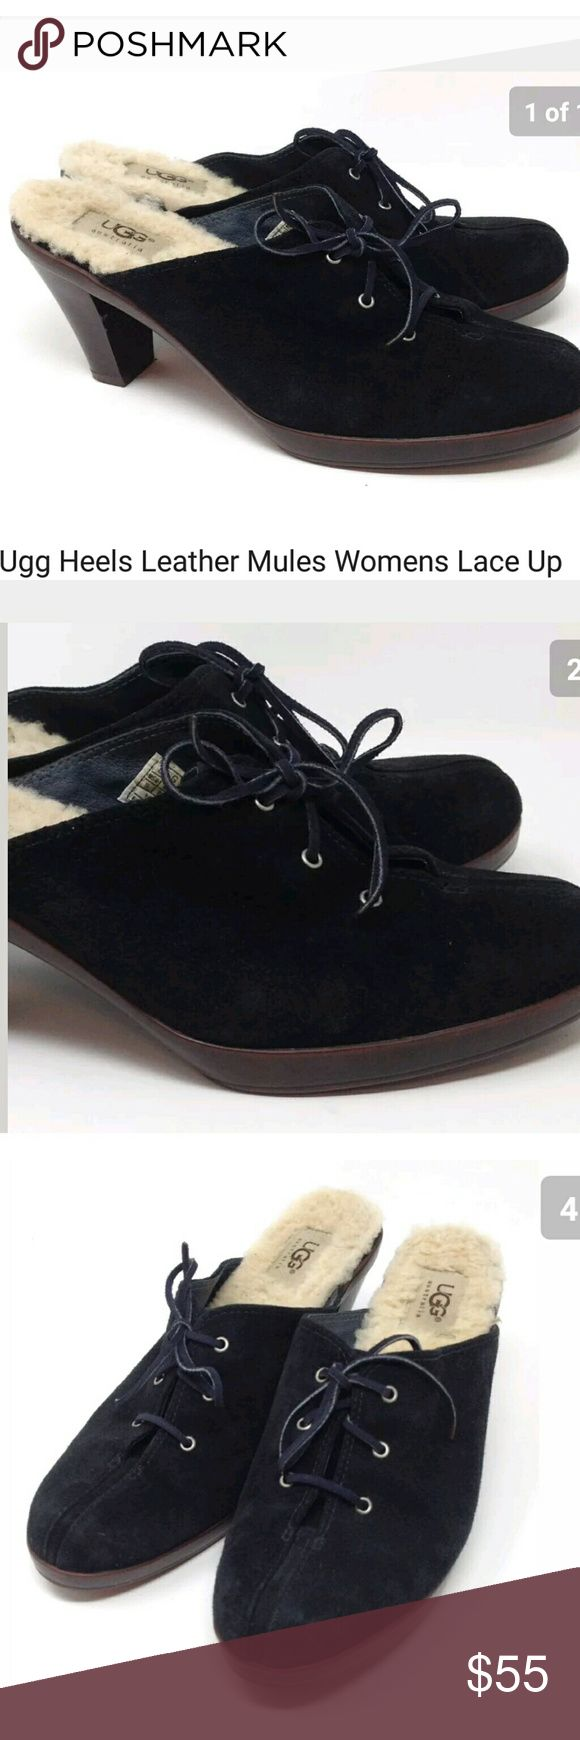 "Ugg Heels Suede Leather Mules US 9 / EU 40 Ugg Heels Suede Leather Mules Womens Lace Up Slip On Casual Shoes Size US 9 / EU 40 / UK 7.5 - Preowned excellent condition, barely used.  Type: Shoes Style: Leather 3"" Block Heels Mules Lace Up Slip On Casual Shoes  Brand: Ugg Australia Size: US 9 / EU 40 / UK 7.5 Material: Suede Leather Uppers / Wool Shearling Insoles / Manmade Soles  Color: Black Condition: Excellent Preowned Condition, Barely Used  Country of Manufacturer: China Stock Number…"